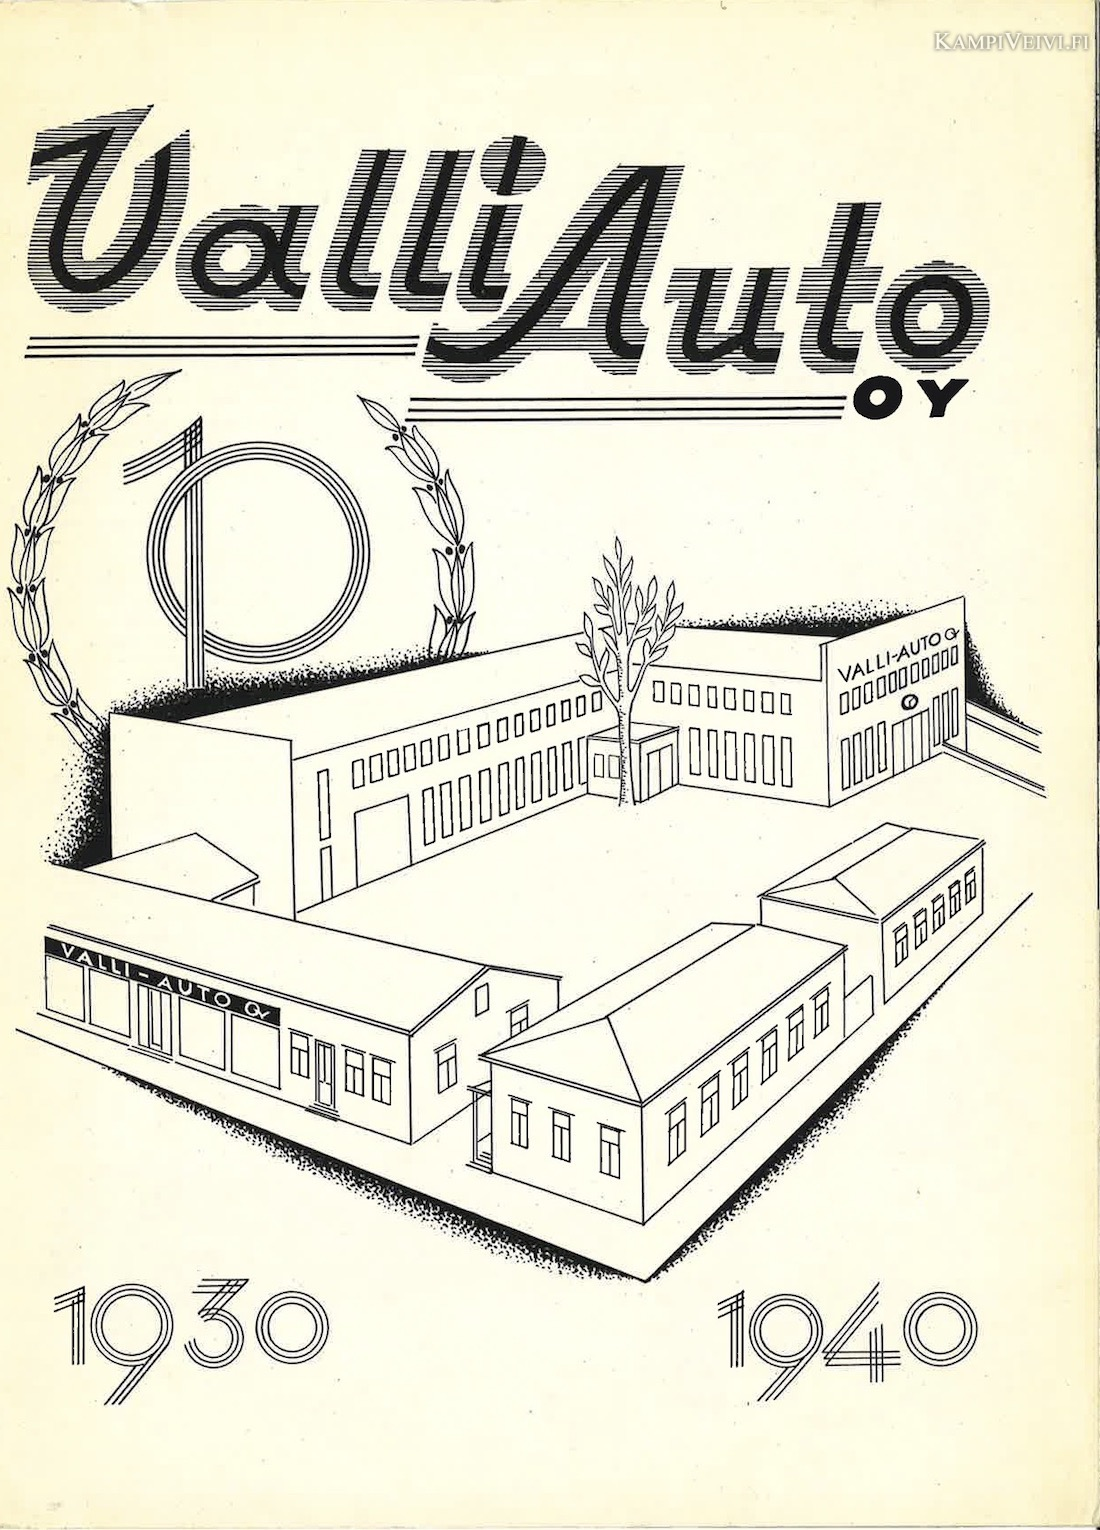 valliauto1940_kansi